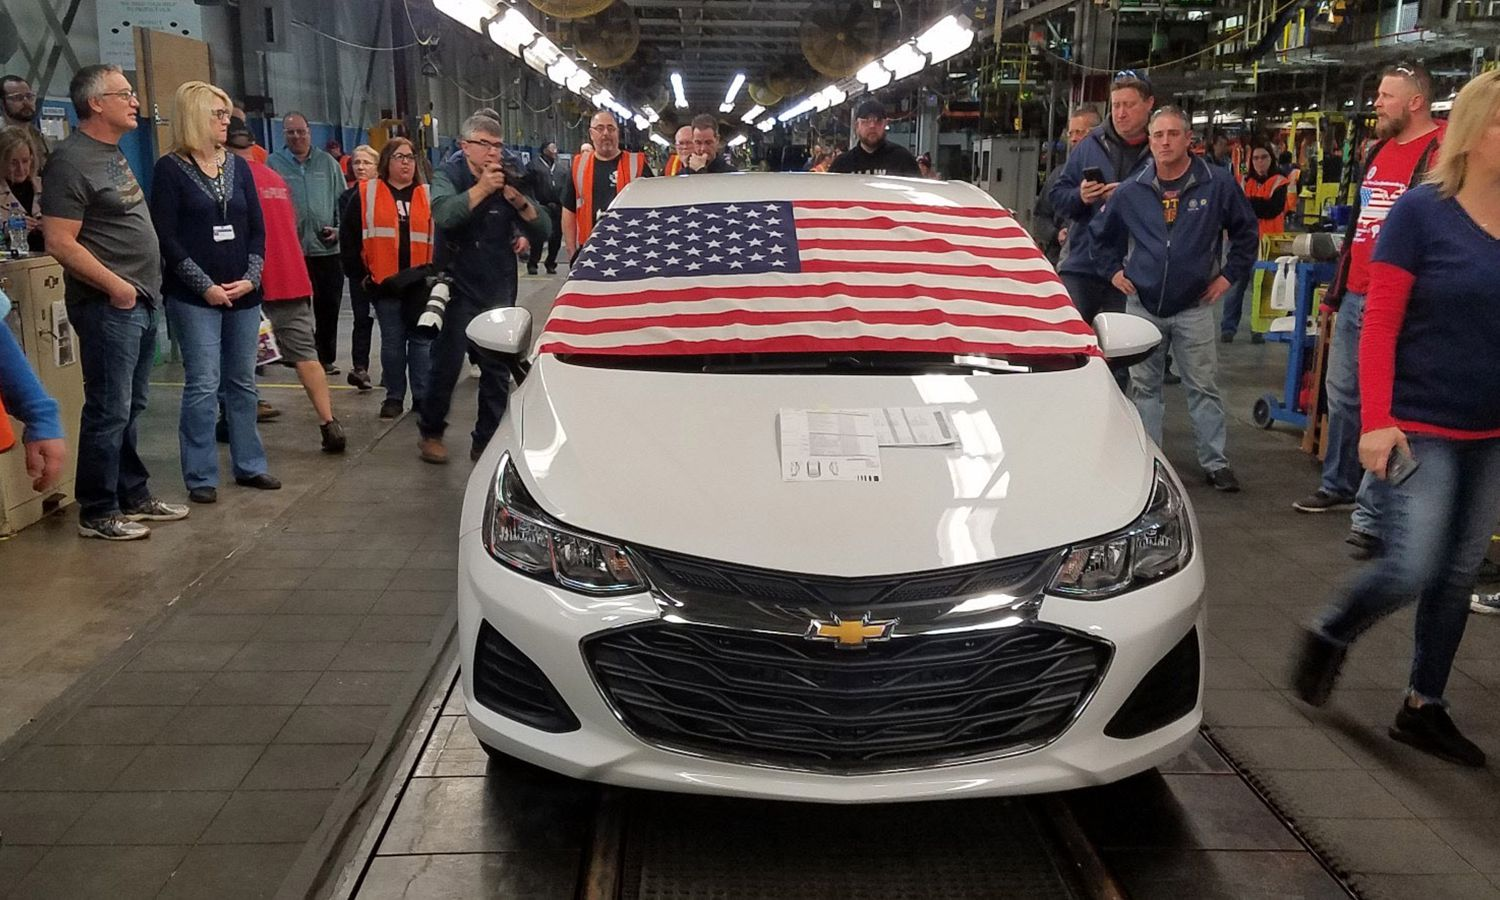 An American flag fills up the windshield of a white Chevy Cruze.